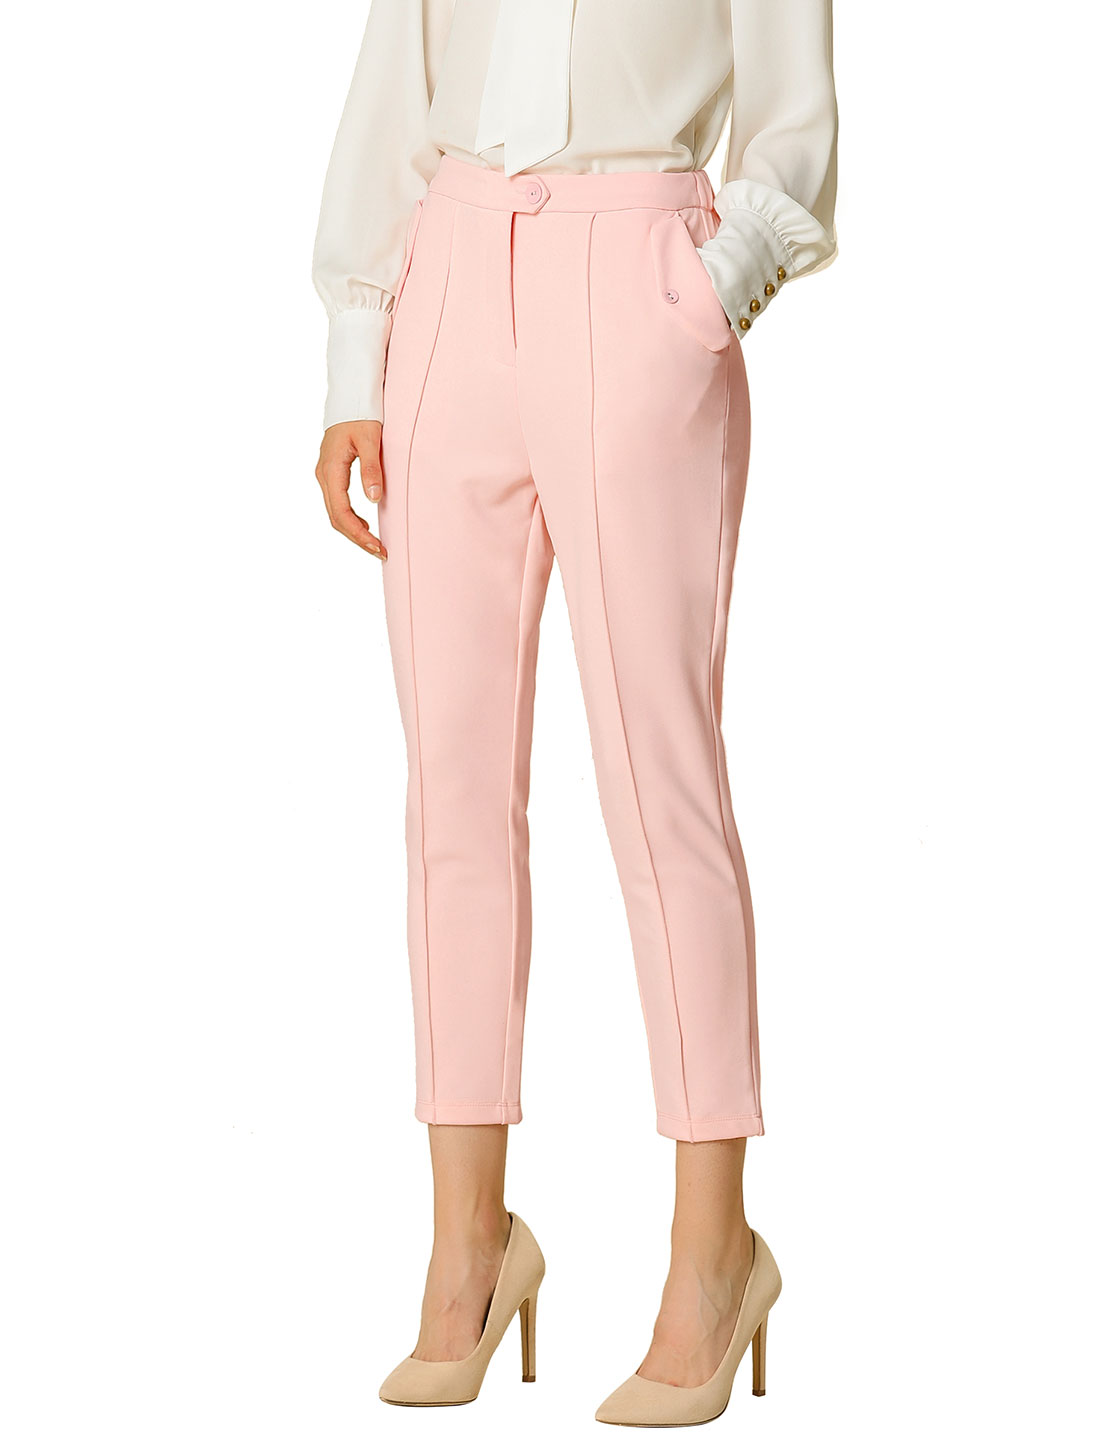 Allegra K Women's Work Pants Slim Stretchy Cropped Trousers Pink S